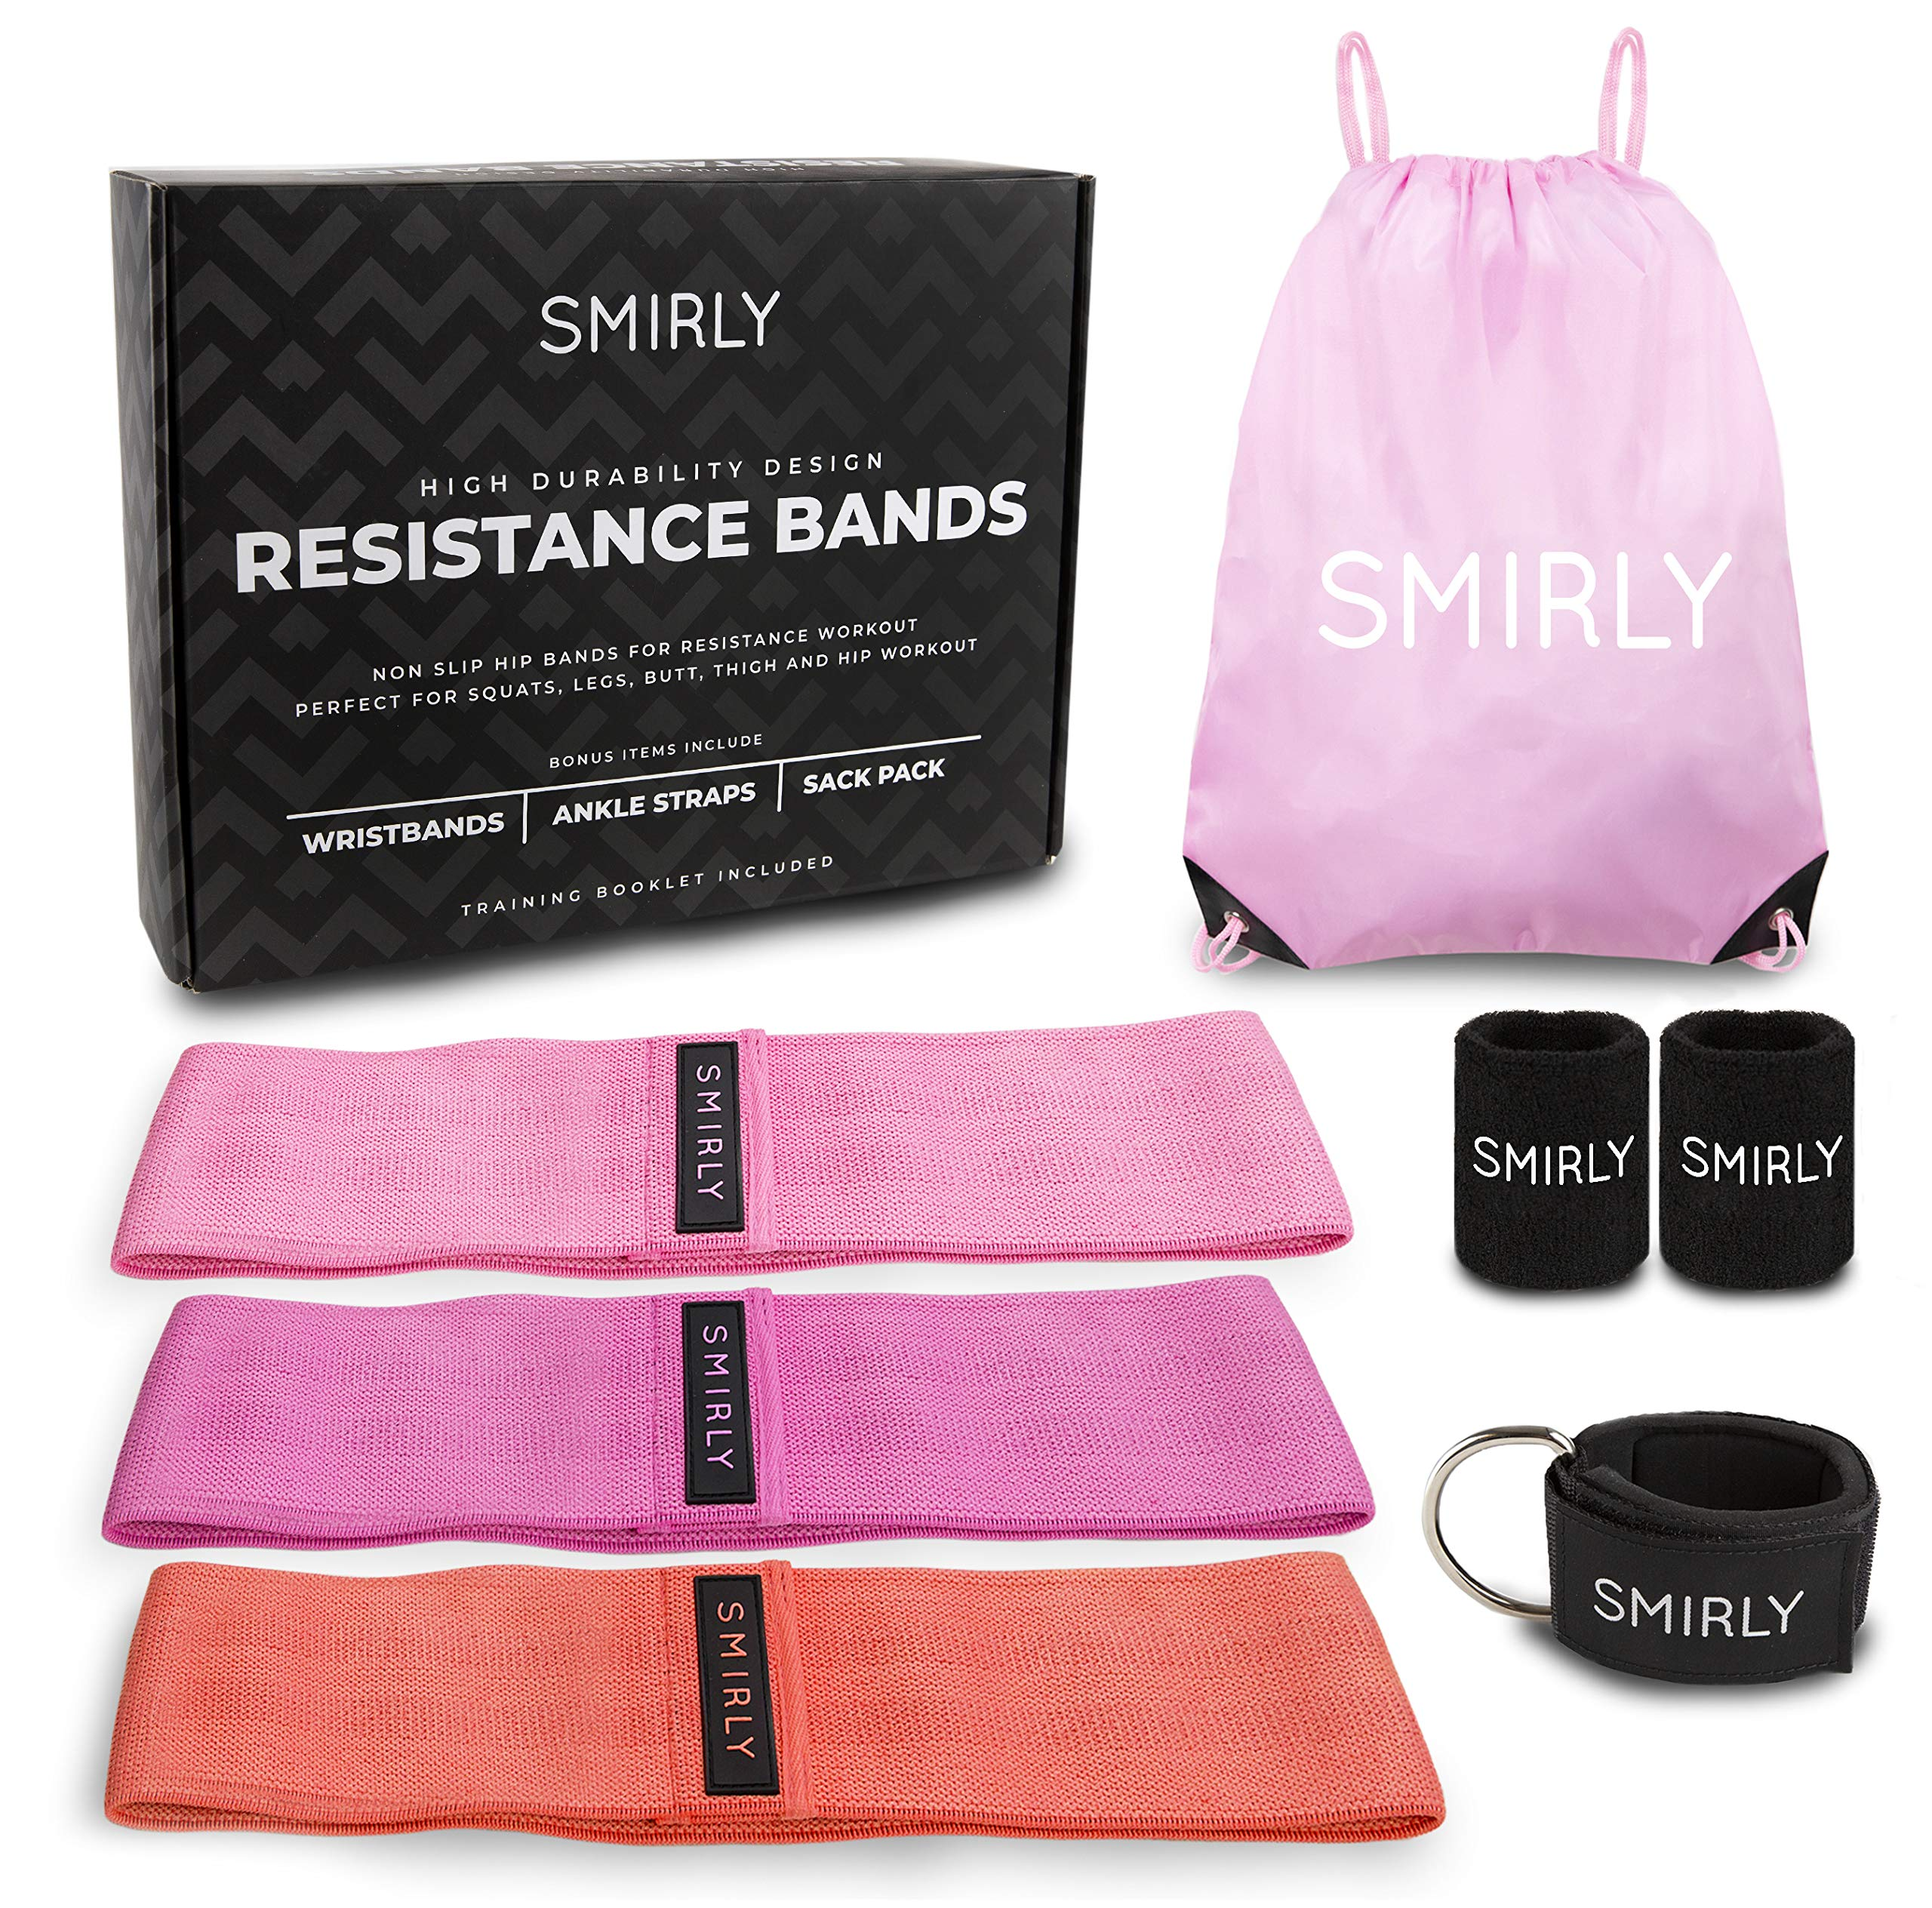 Hip Exercise Resistance Bands Set: 3 Thick Fabric Thigh Bands for Leg and Butt Work Out - Womens Loop Band Pack with Sweatbands, Ankle Strap, Gym Bag - Booty, Stretch, and Strength Training Equipment